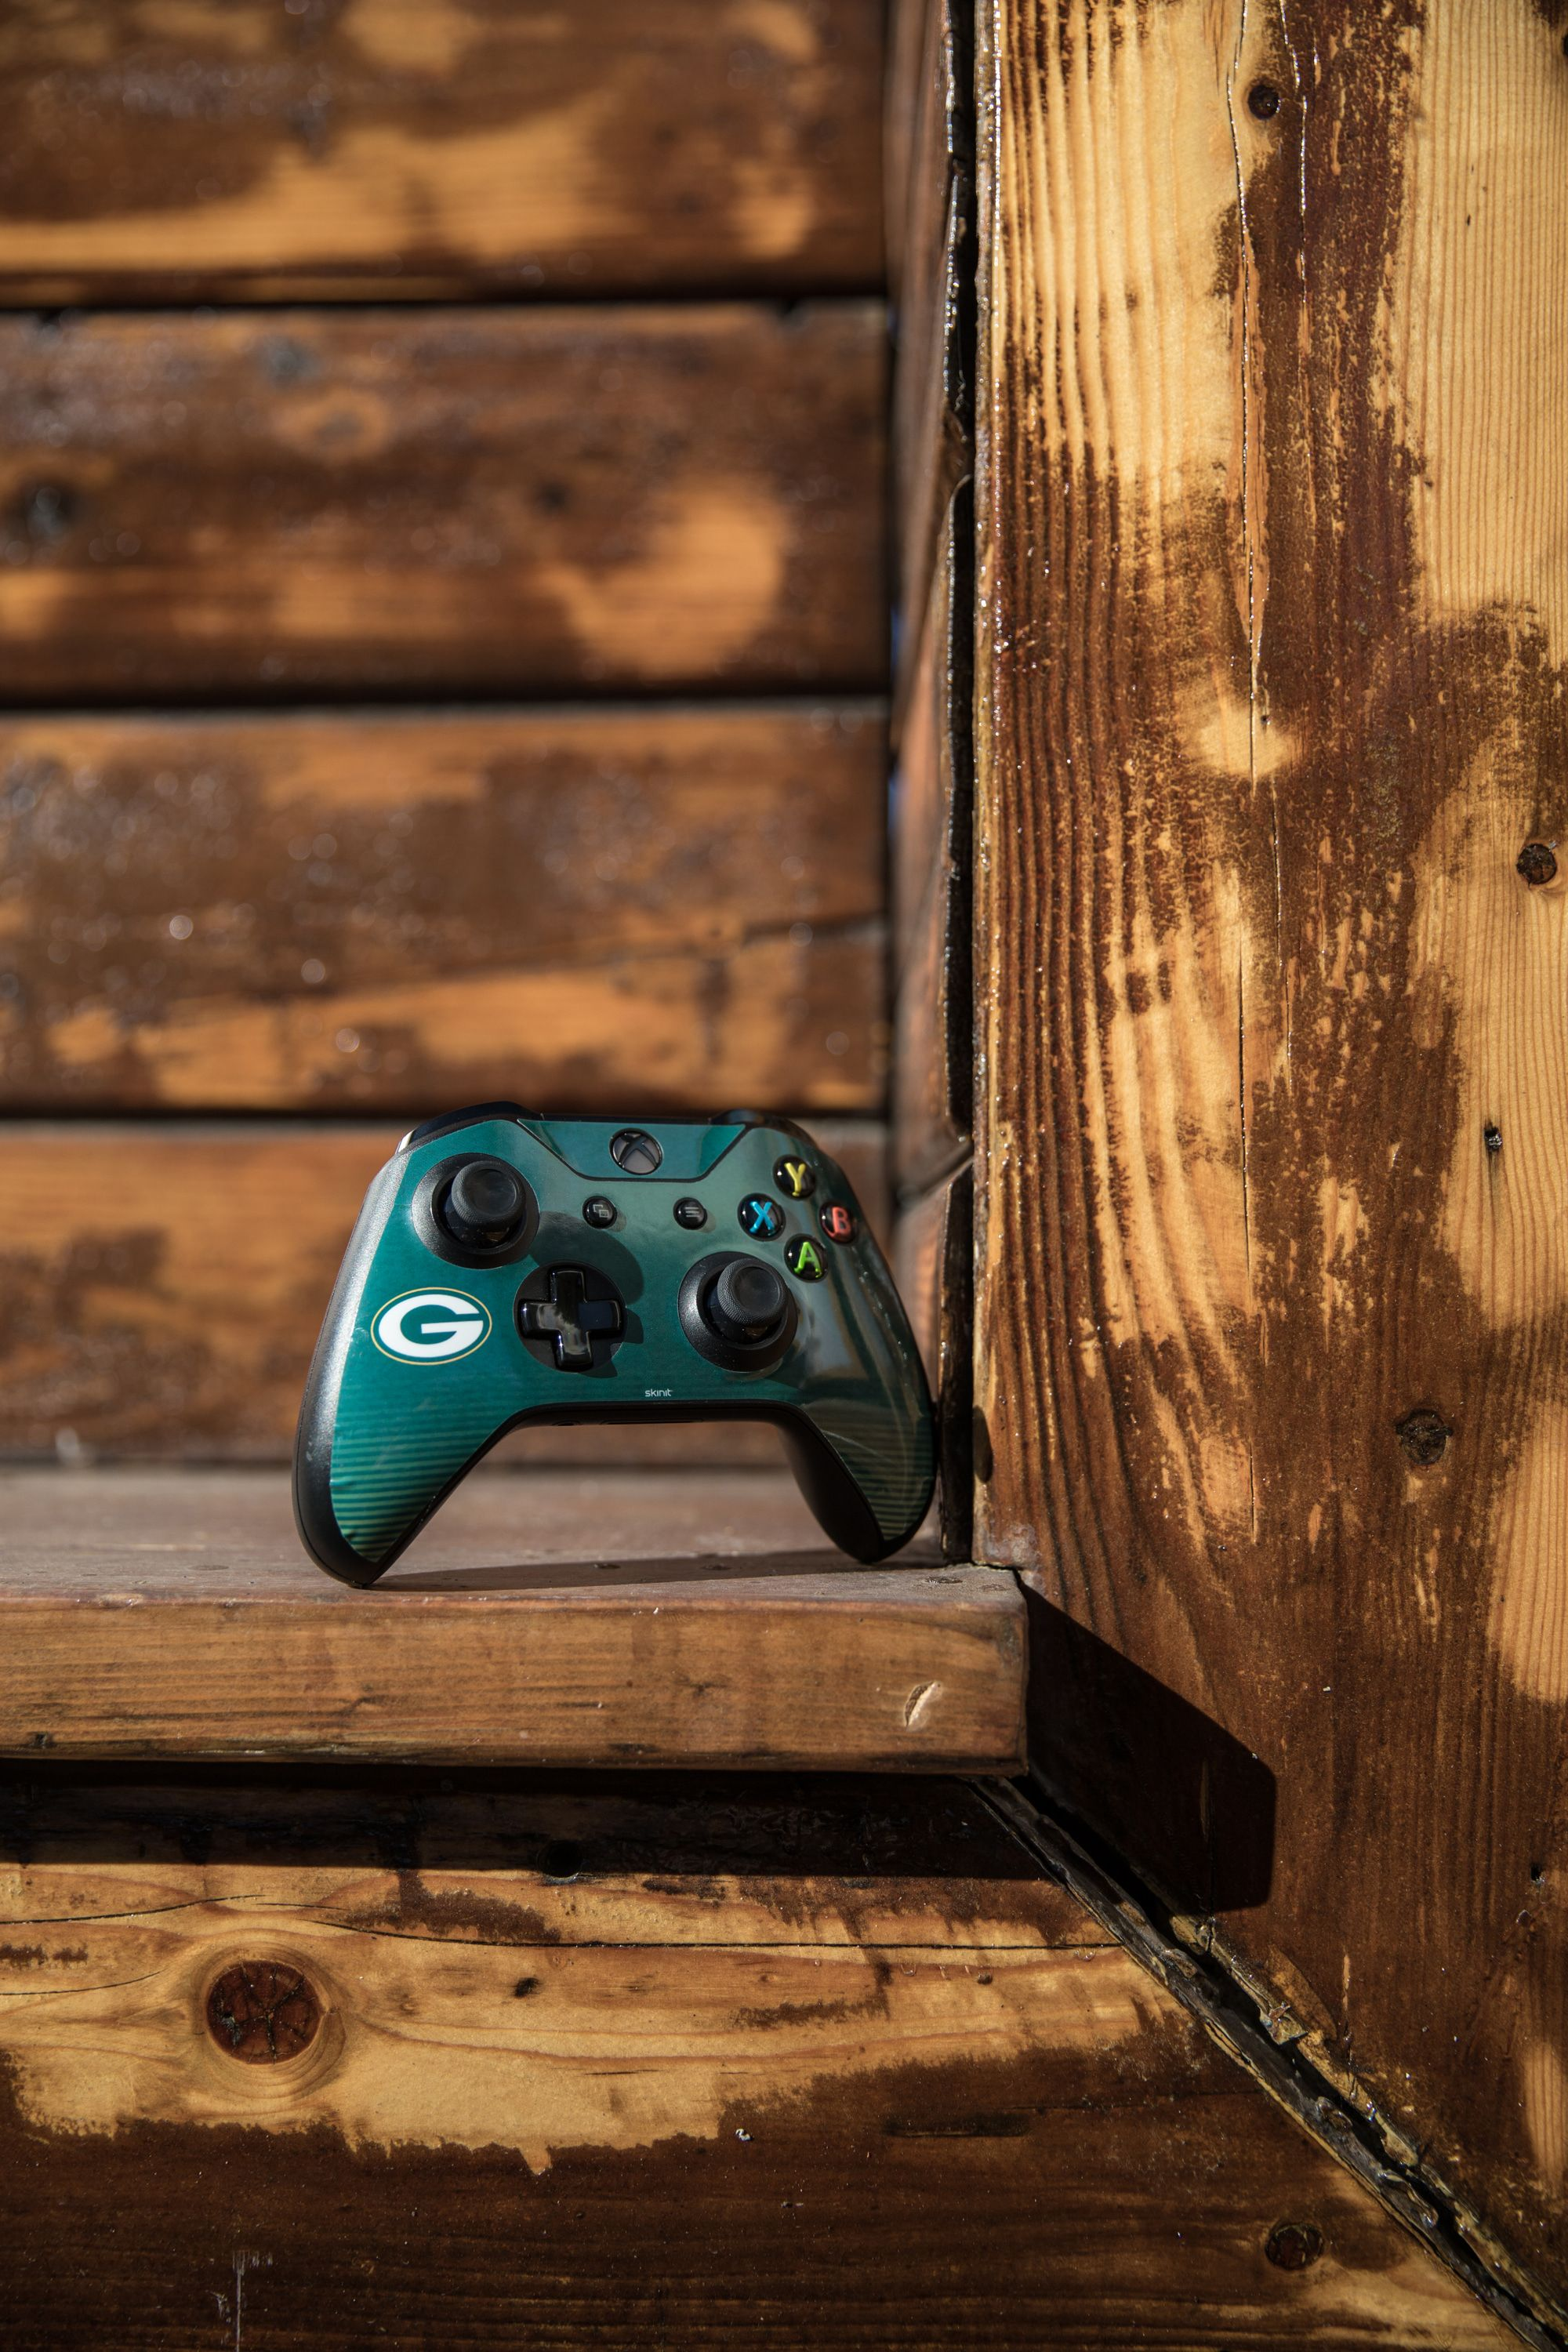 Nfl Packers Xbox One X Controller Skins By Skinit Explore Nfl Designs A Collaboration With Nfl X Skinit Skinit Has Partnered With Nfl Packers Nfl Xbox One